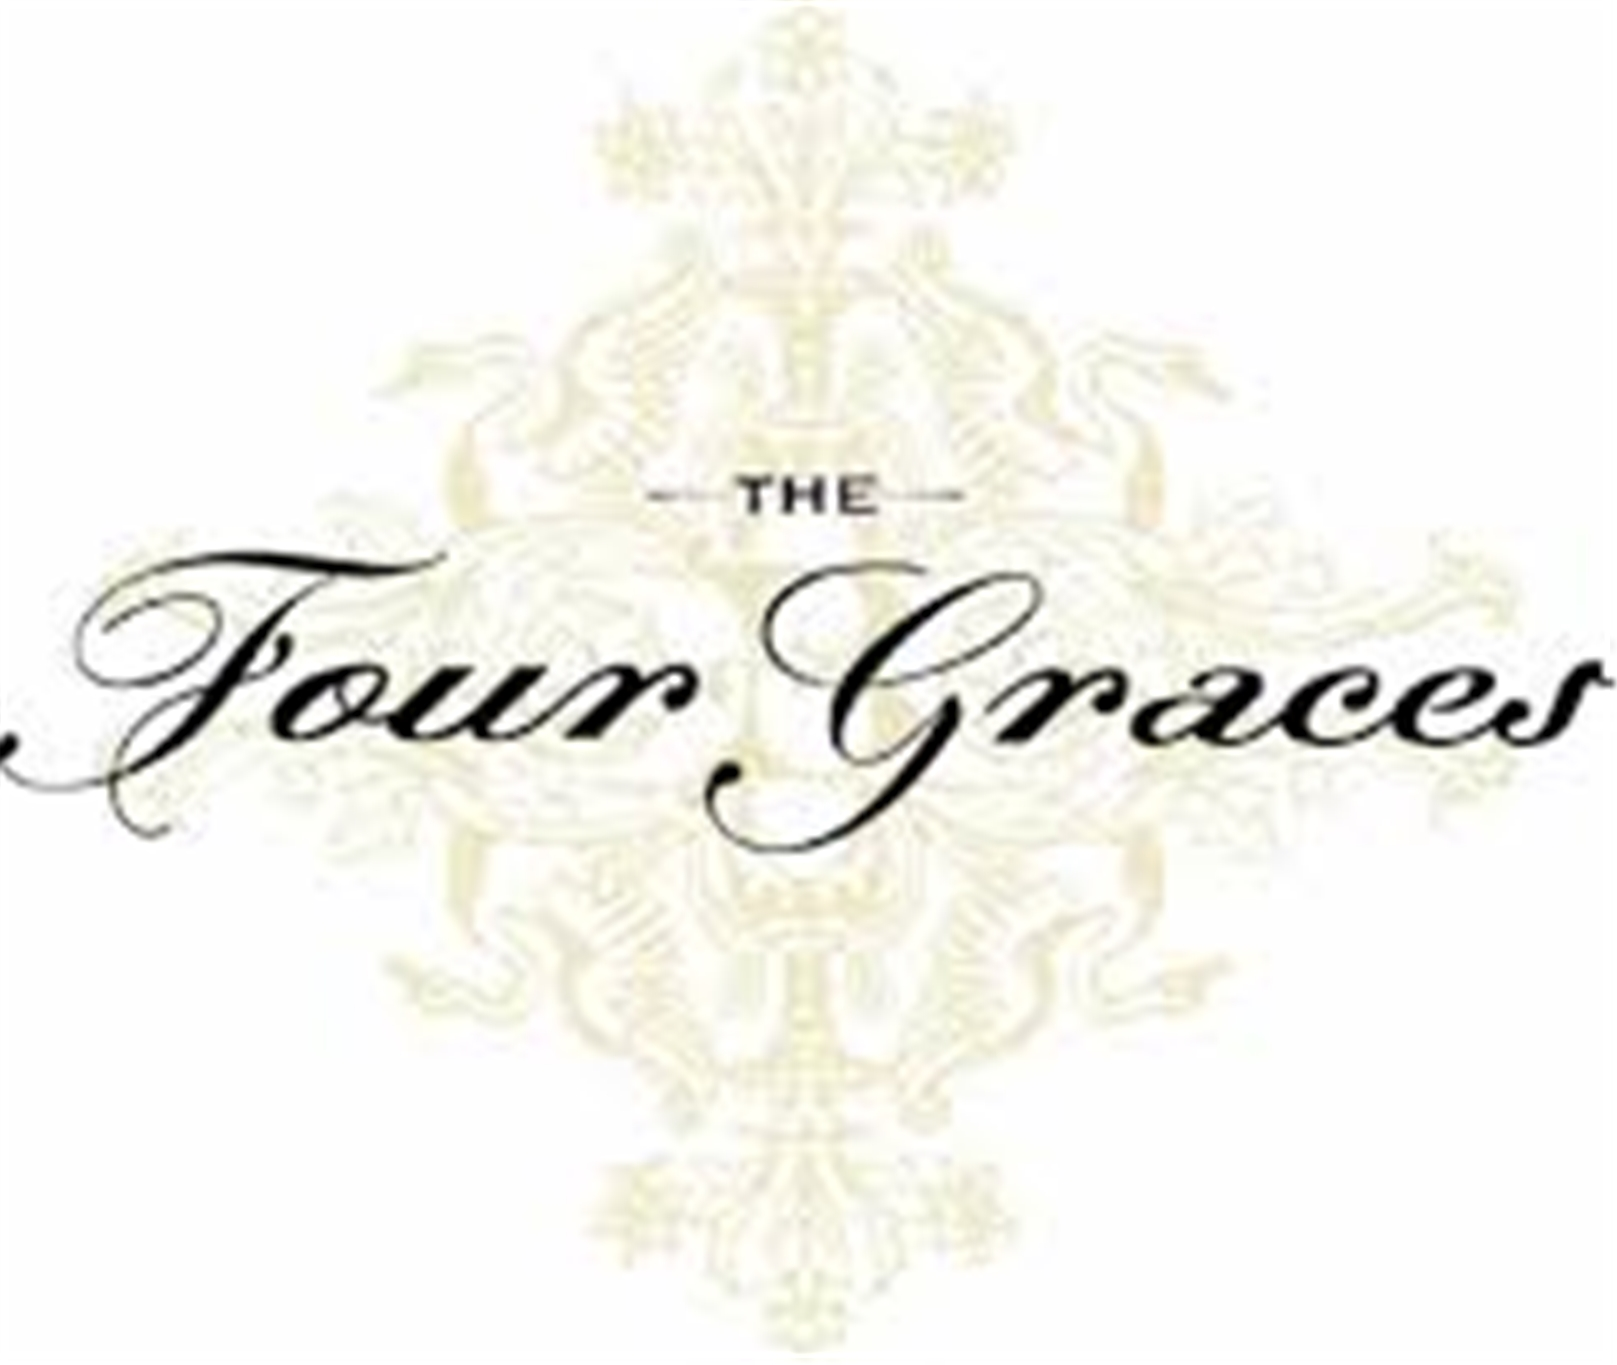 THE FOUR GRACES WILLAMETTE VALLEY PINOT GRIS